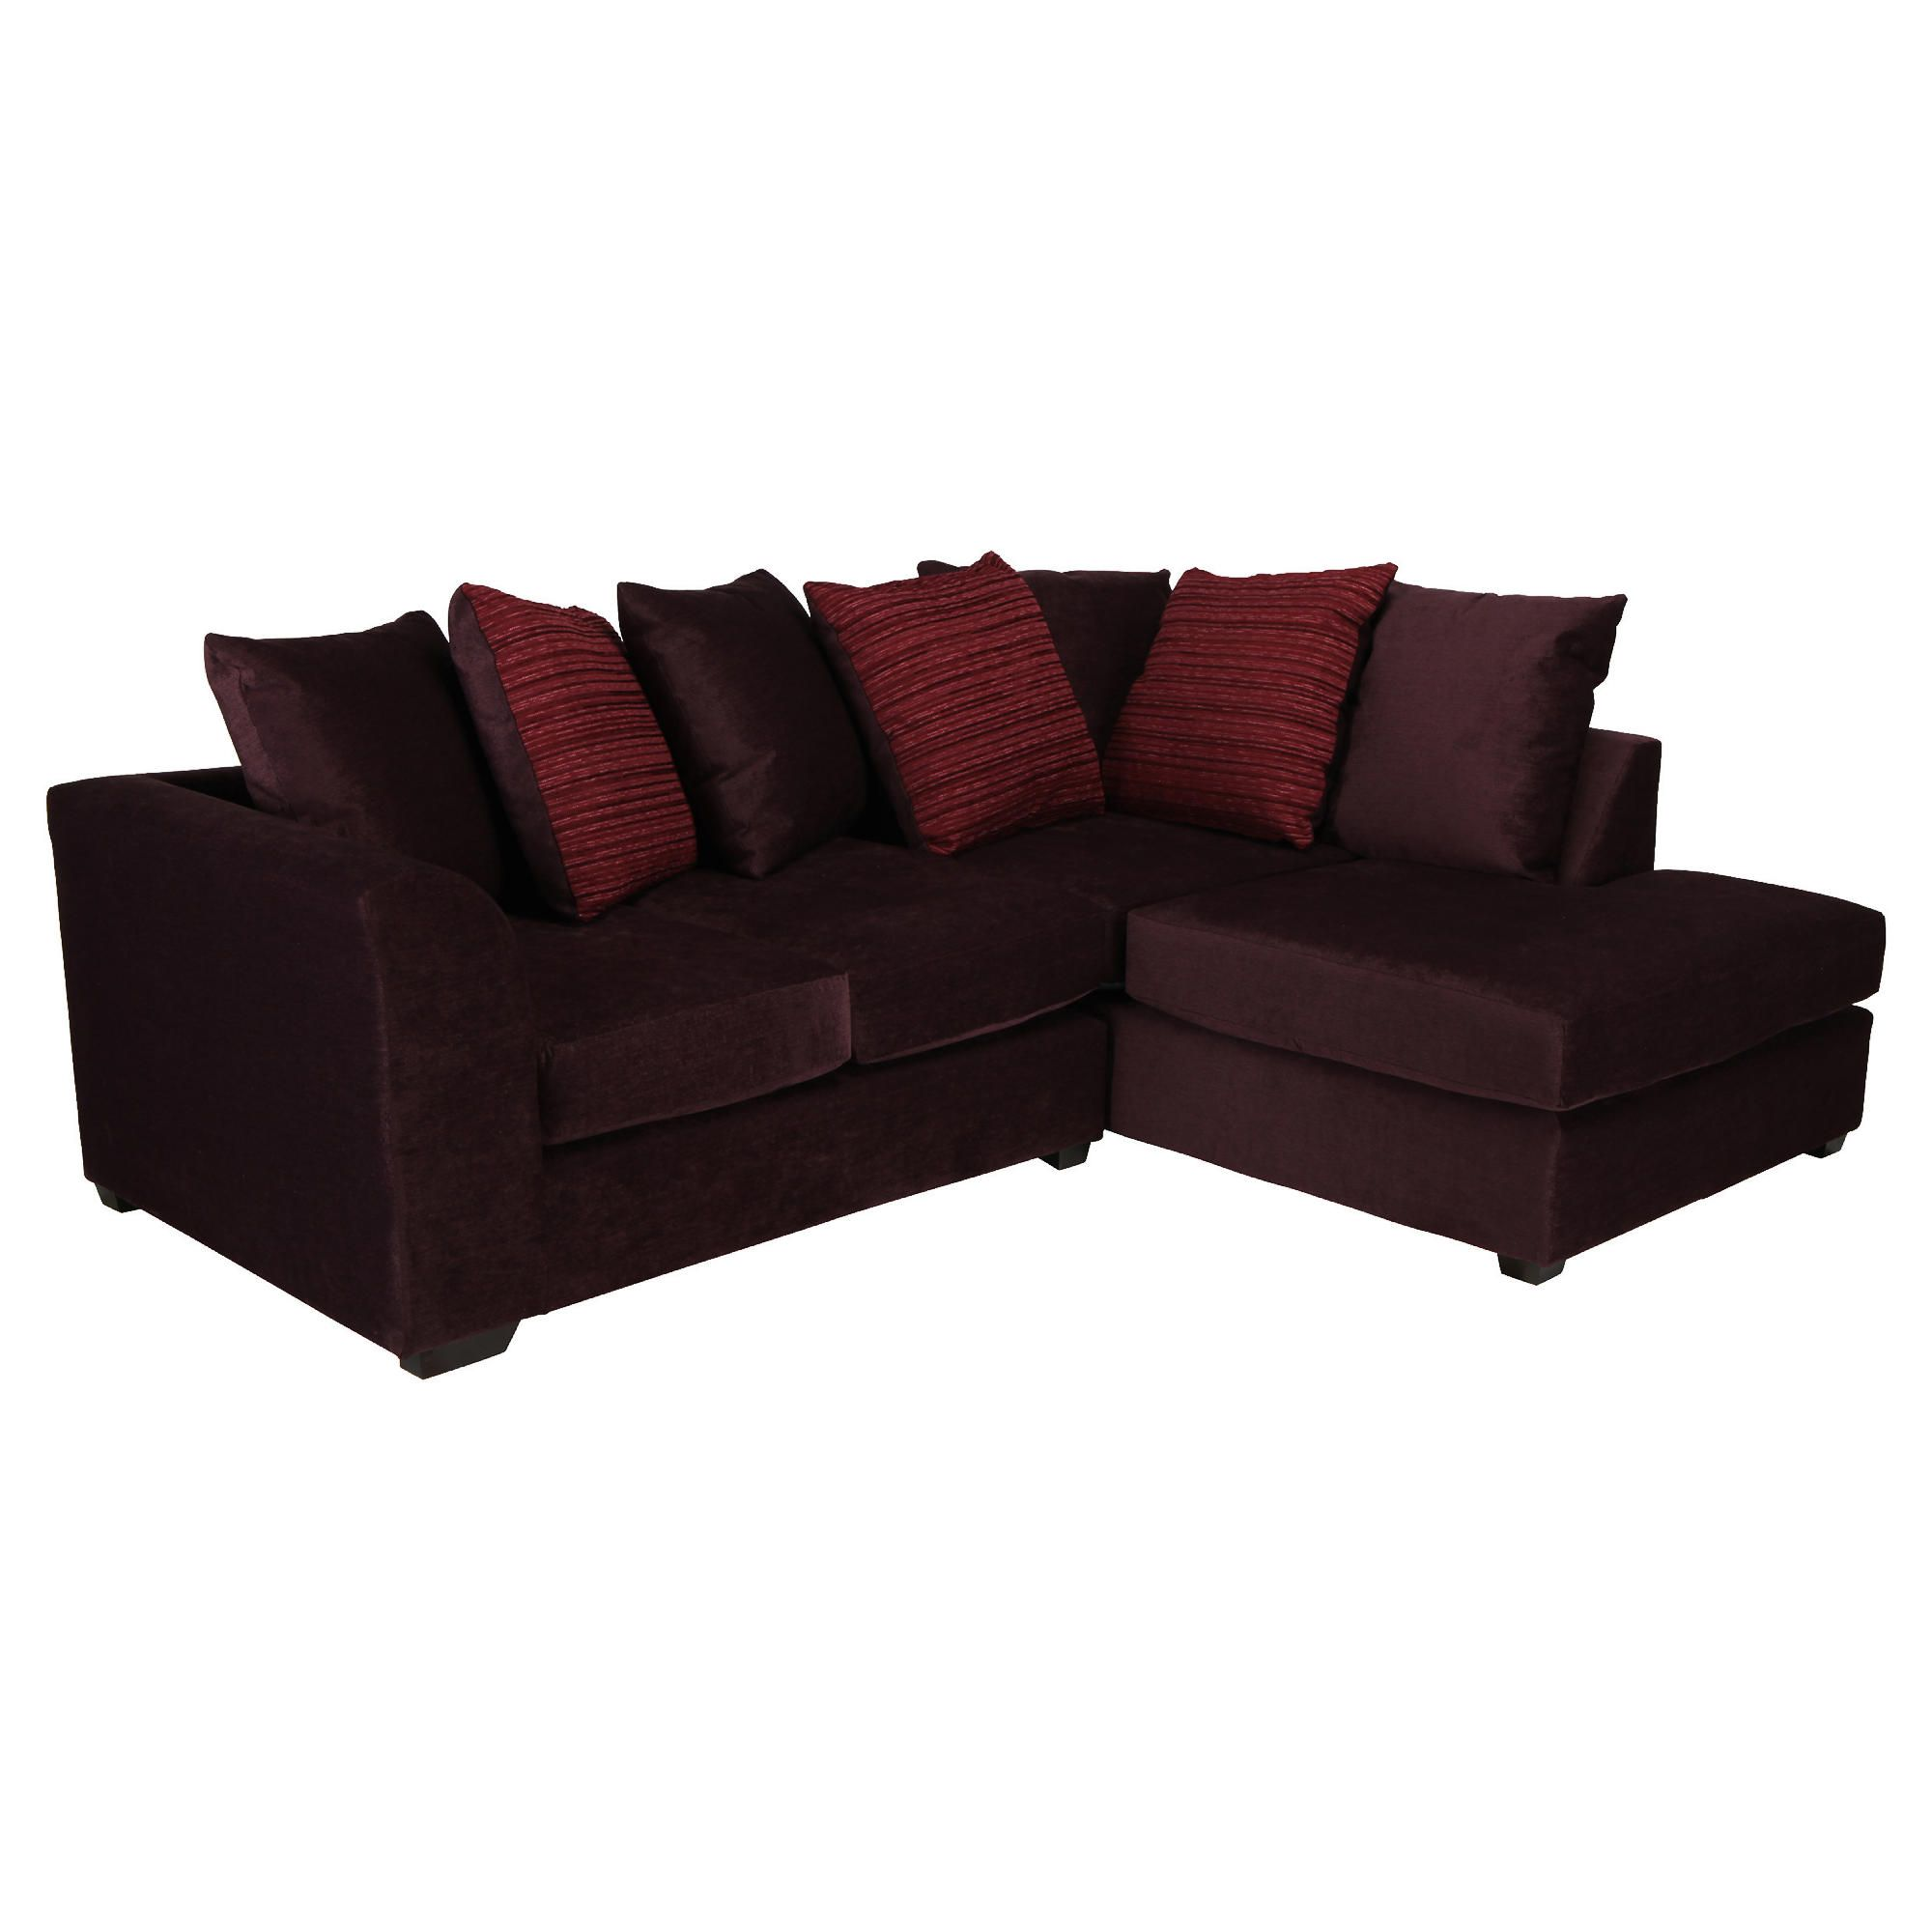 Ontario Fabric Corner Sofa Plum Right Hand Facing at Tesco Direct